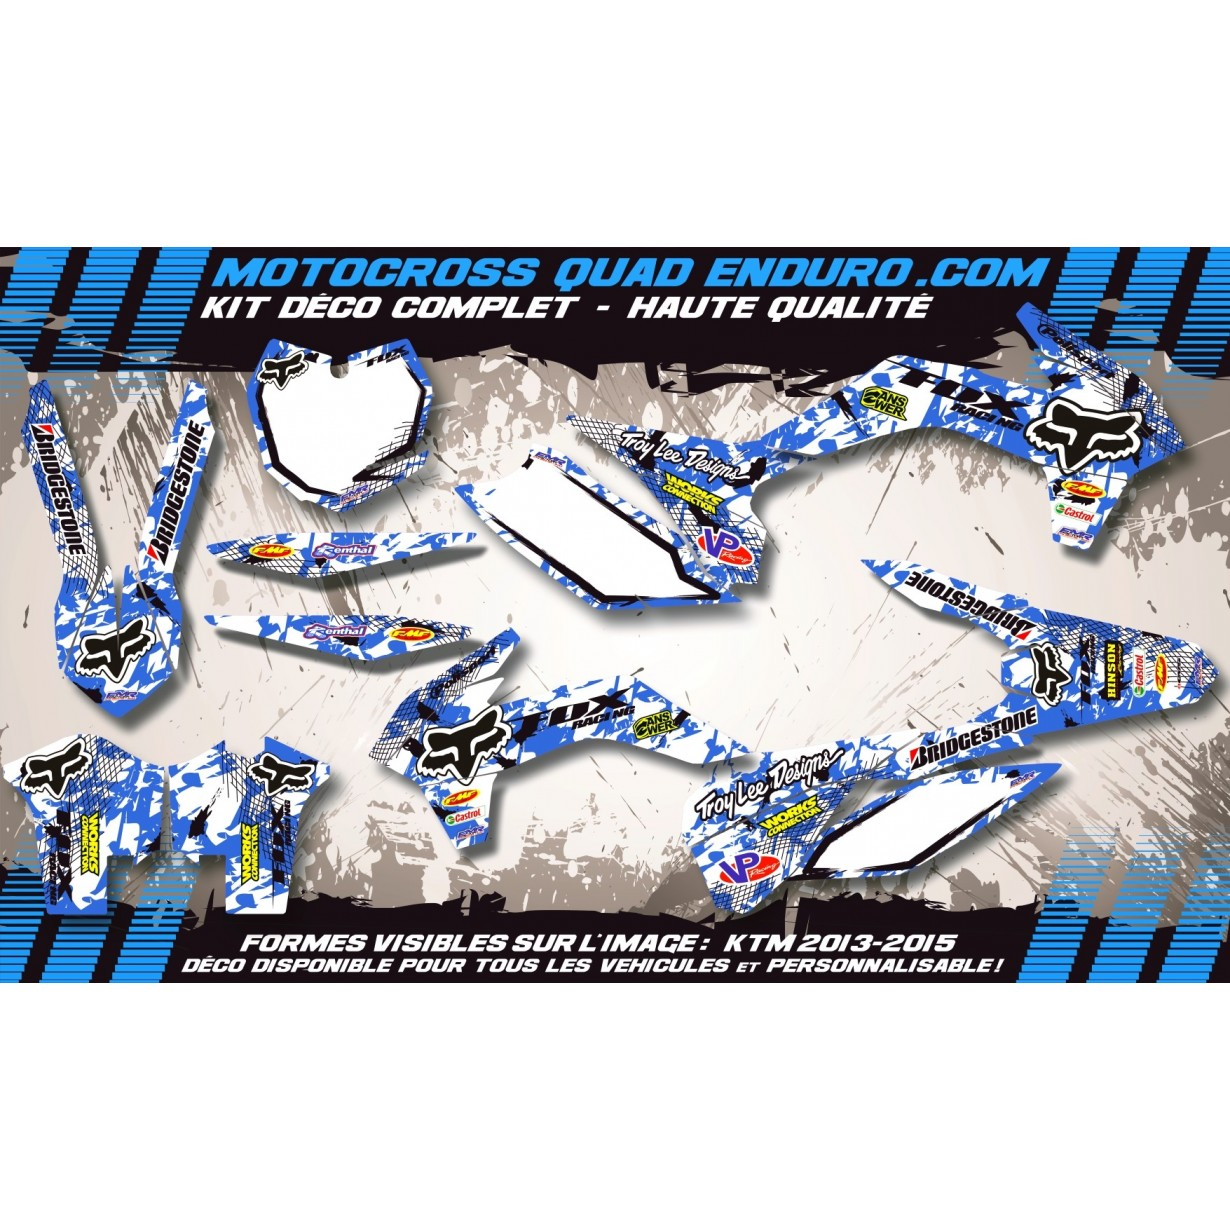 KIT DÉCO Perso EN 04-07 (4t) FOX MA9E